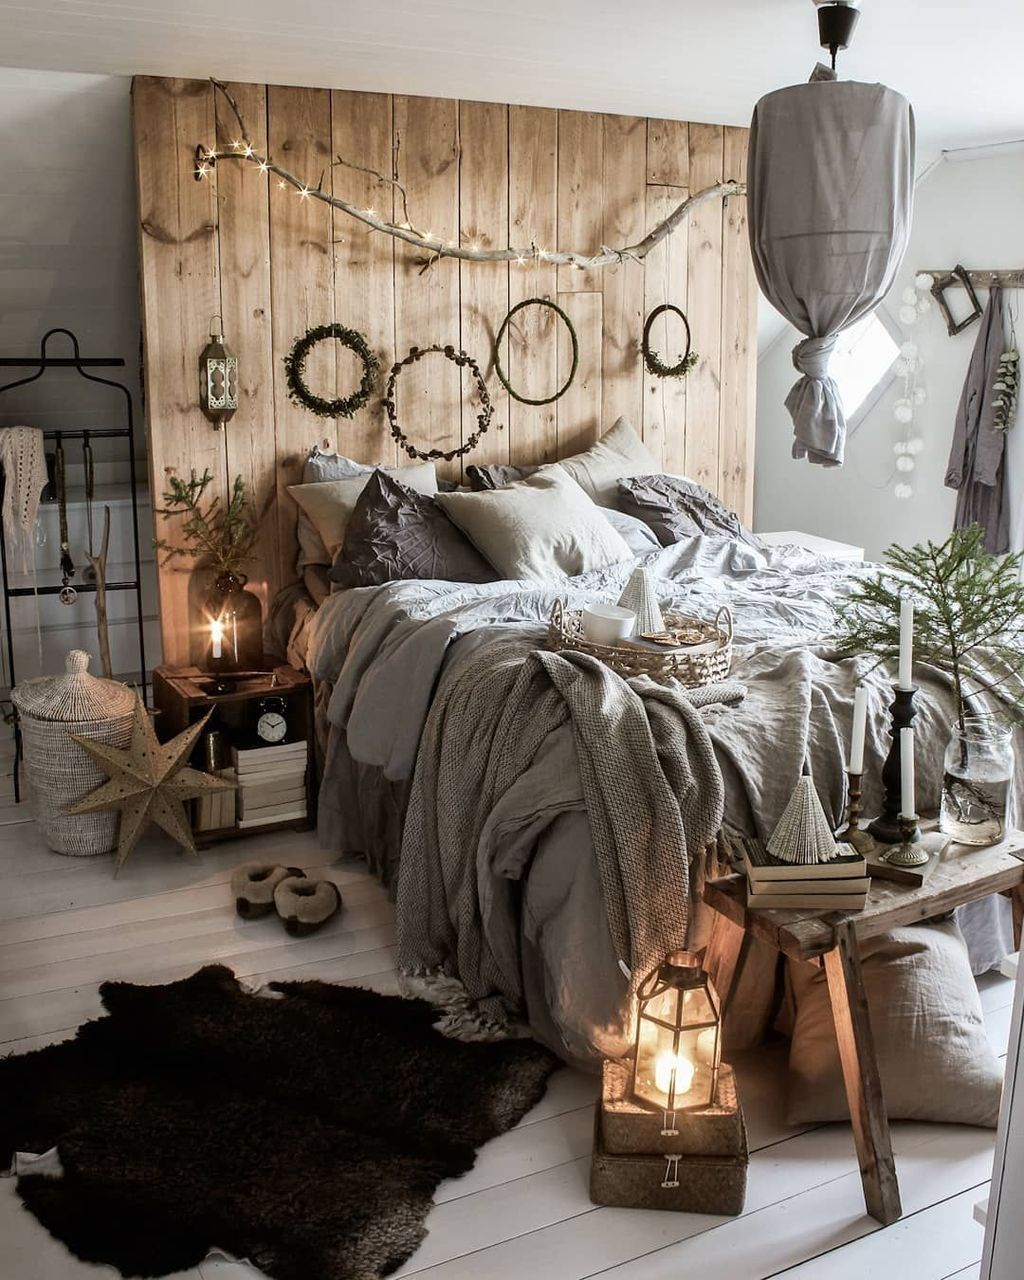 35 Best Bohemian Decor Ideas For Bedroom images